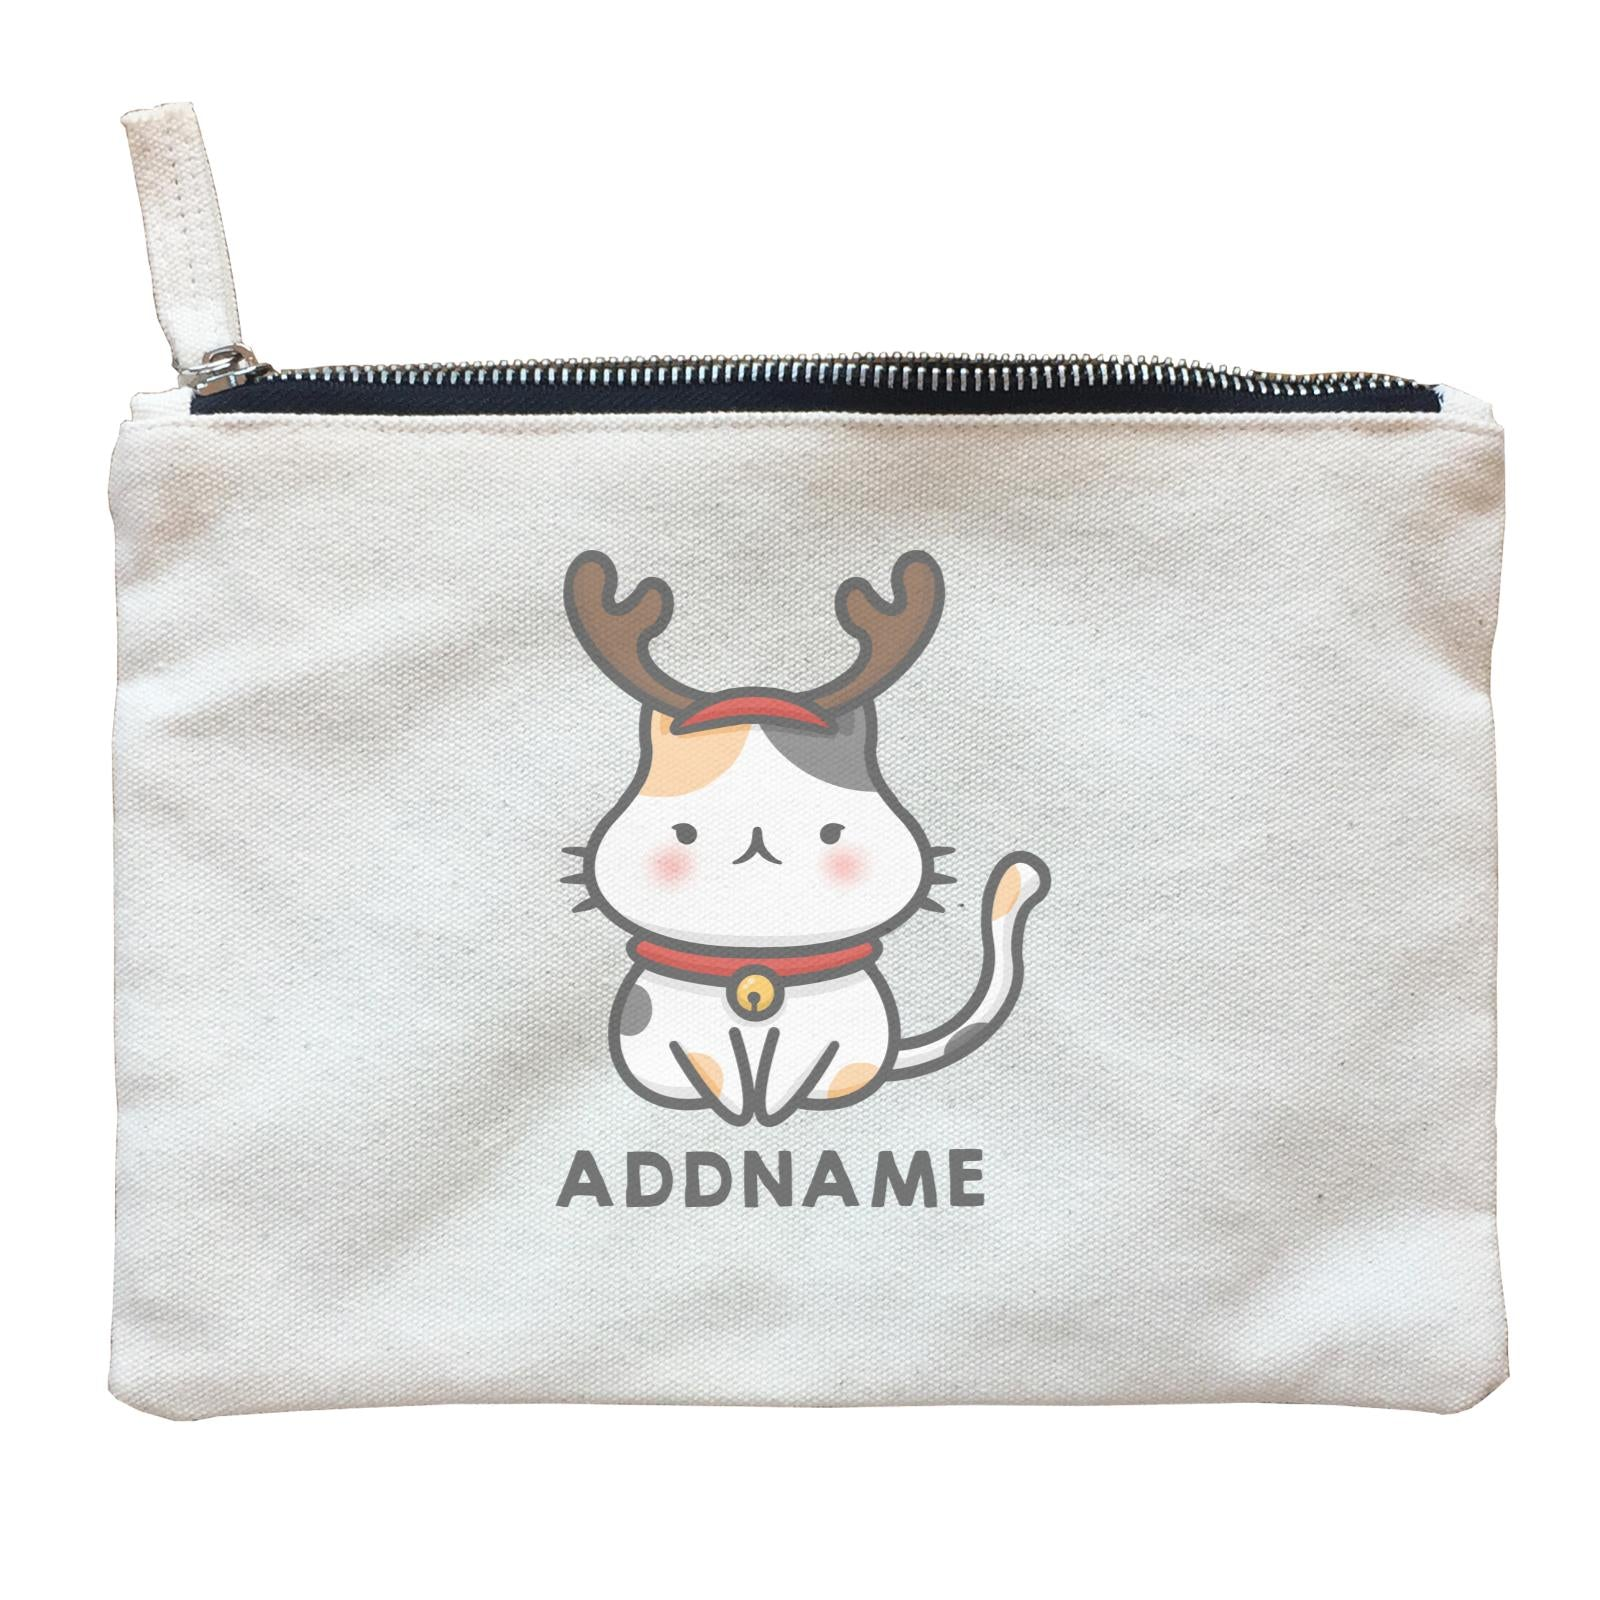 Xmas Cute Cat With Reindeer Antlers Addname Accessories Zipper Pouch